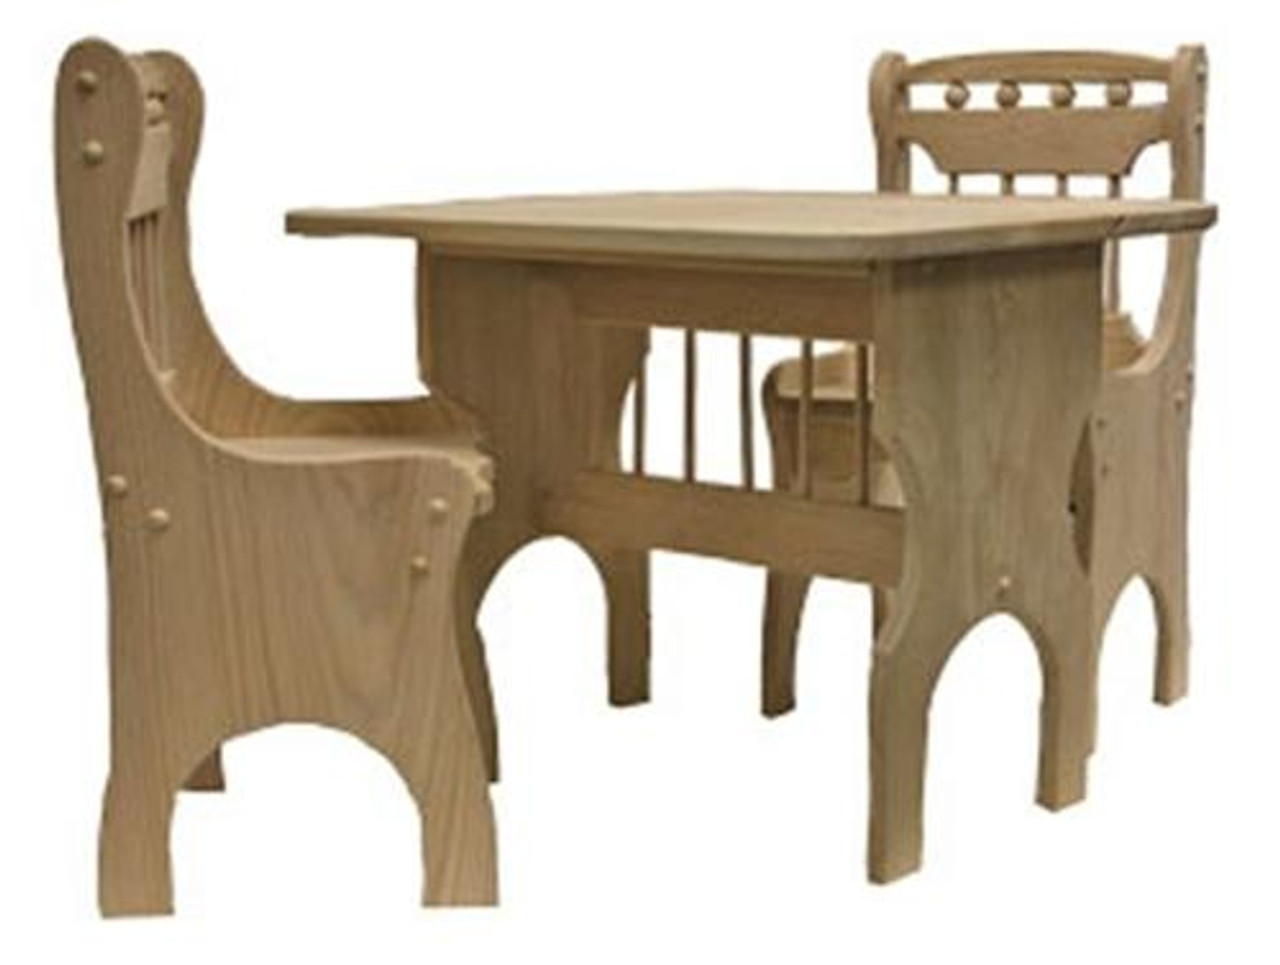 Cherry Tree Toys Childrens Table and Chairs Parts Kit